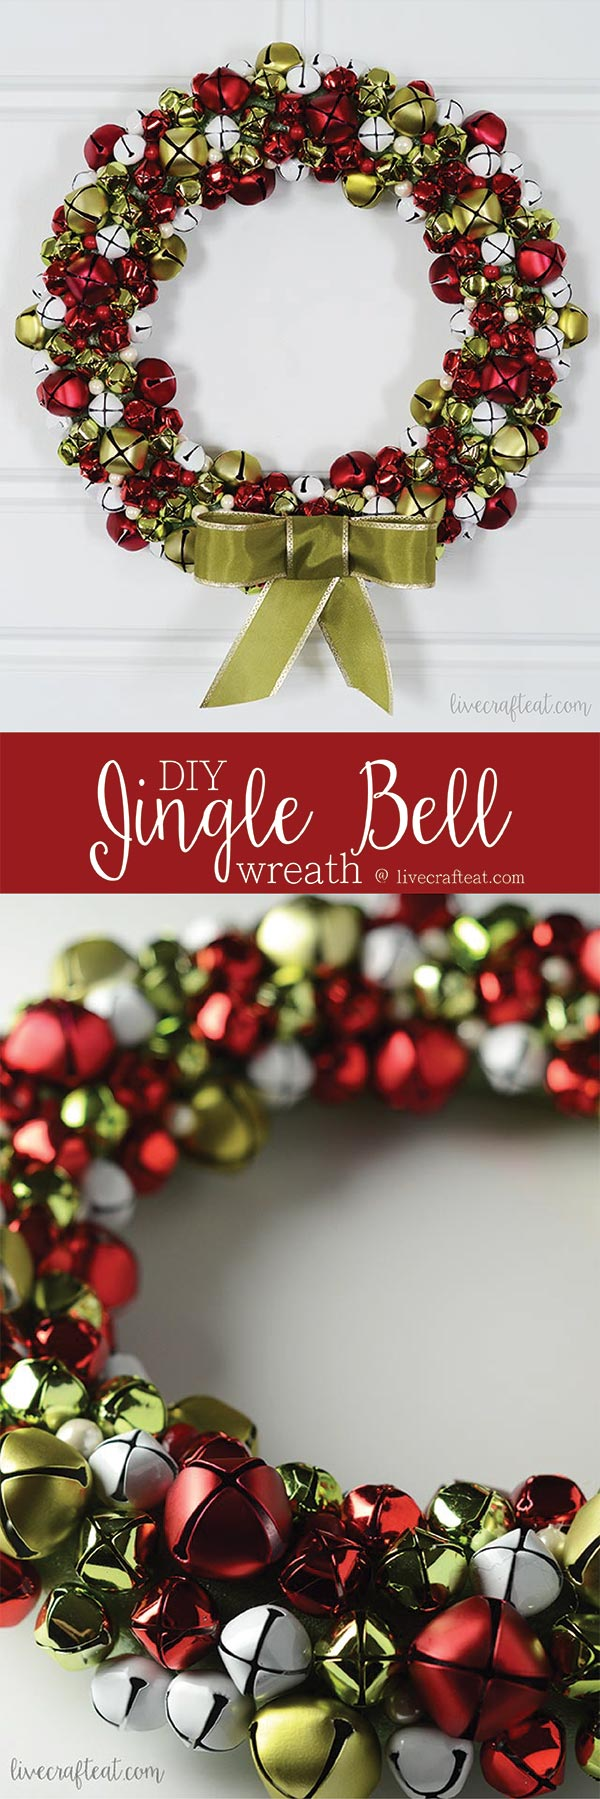 the easiest of christmas wreaths to diy and one that sounds as pretty as it looks!